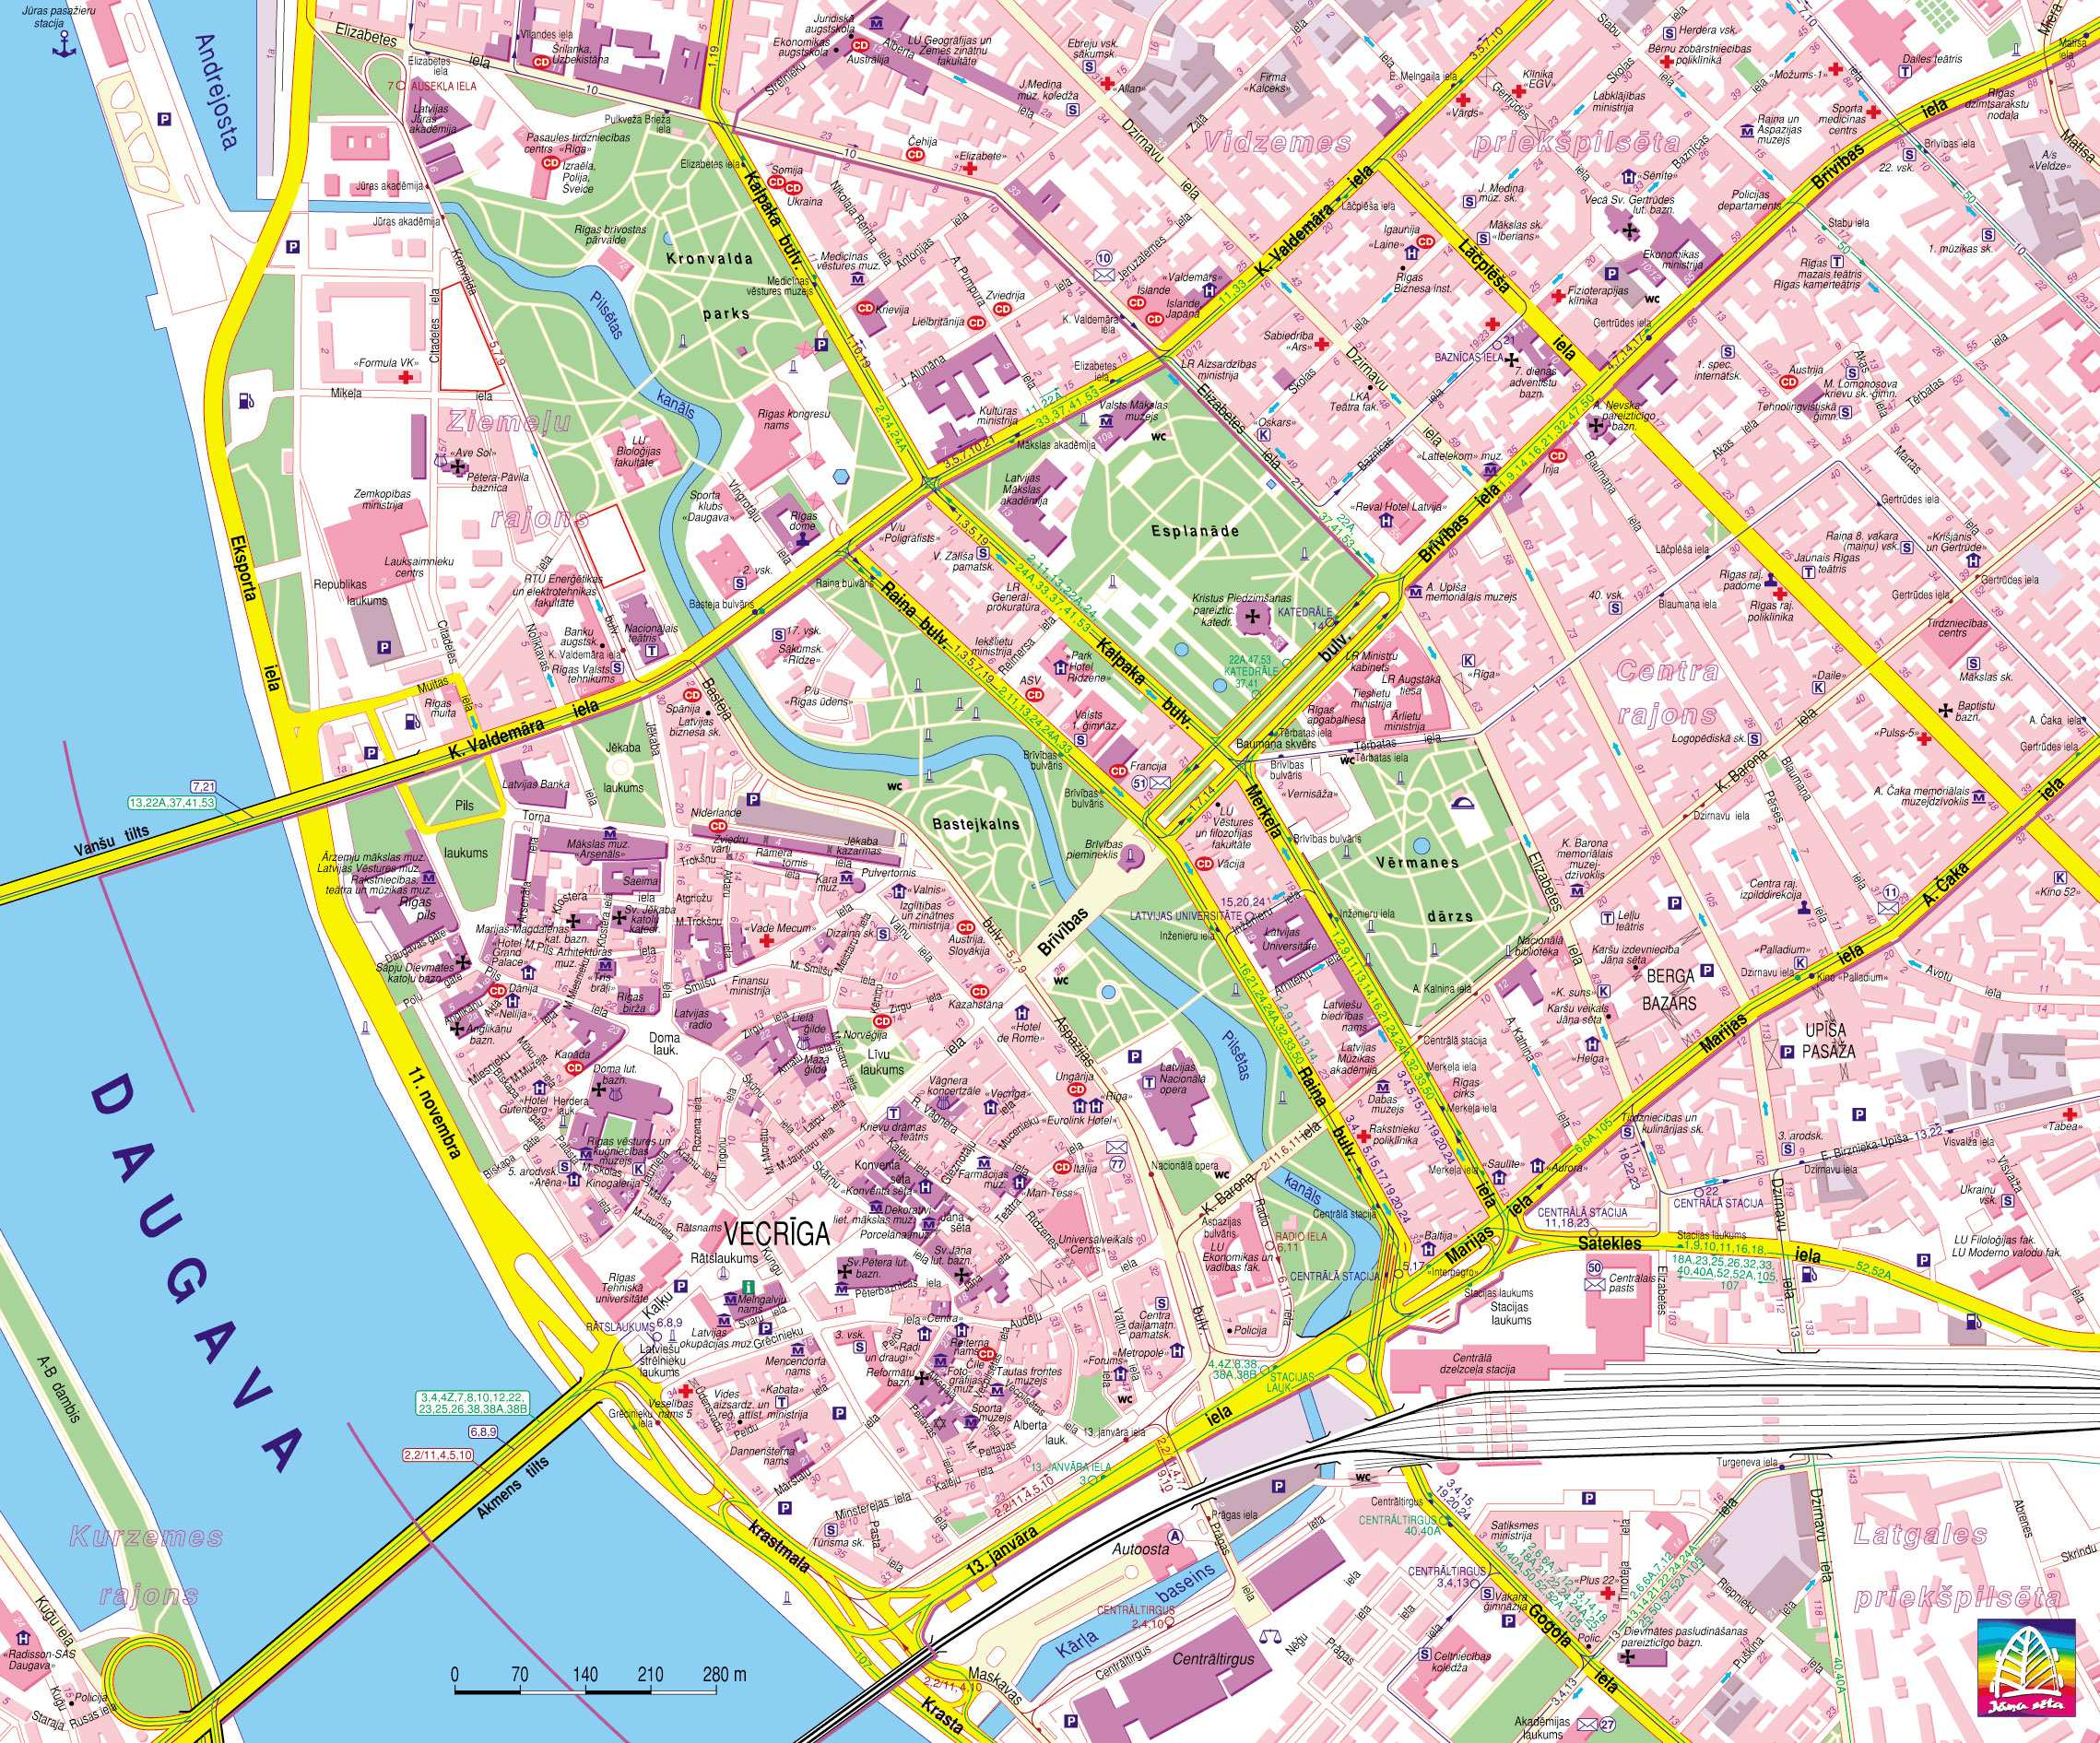 Large Riga Maps For Free Download And Print HighResolution And - Old riga map